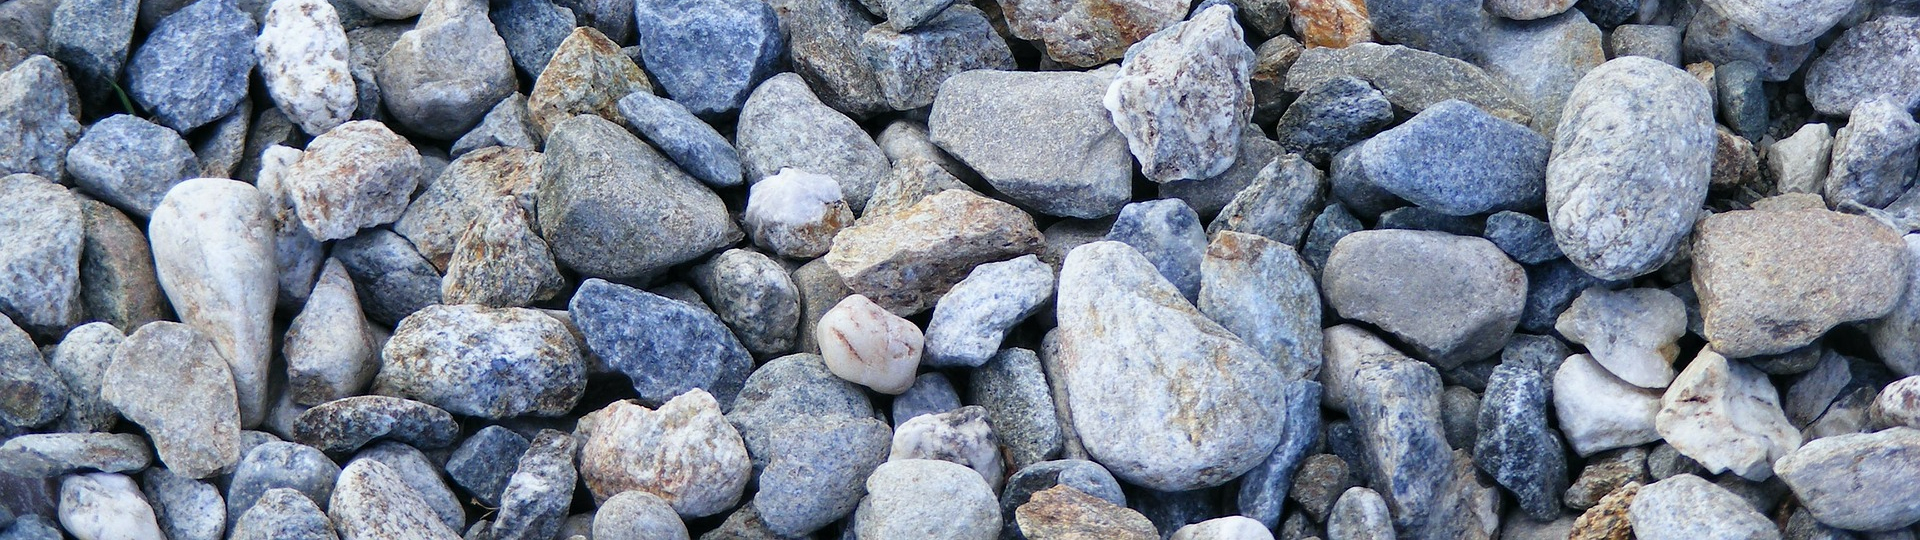 High Quality Gravel from Pebbles to Granite